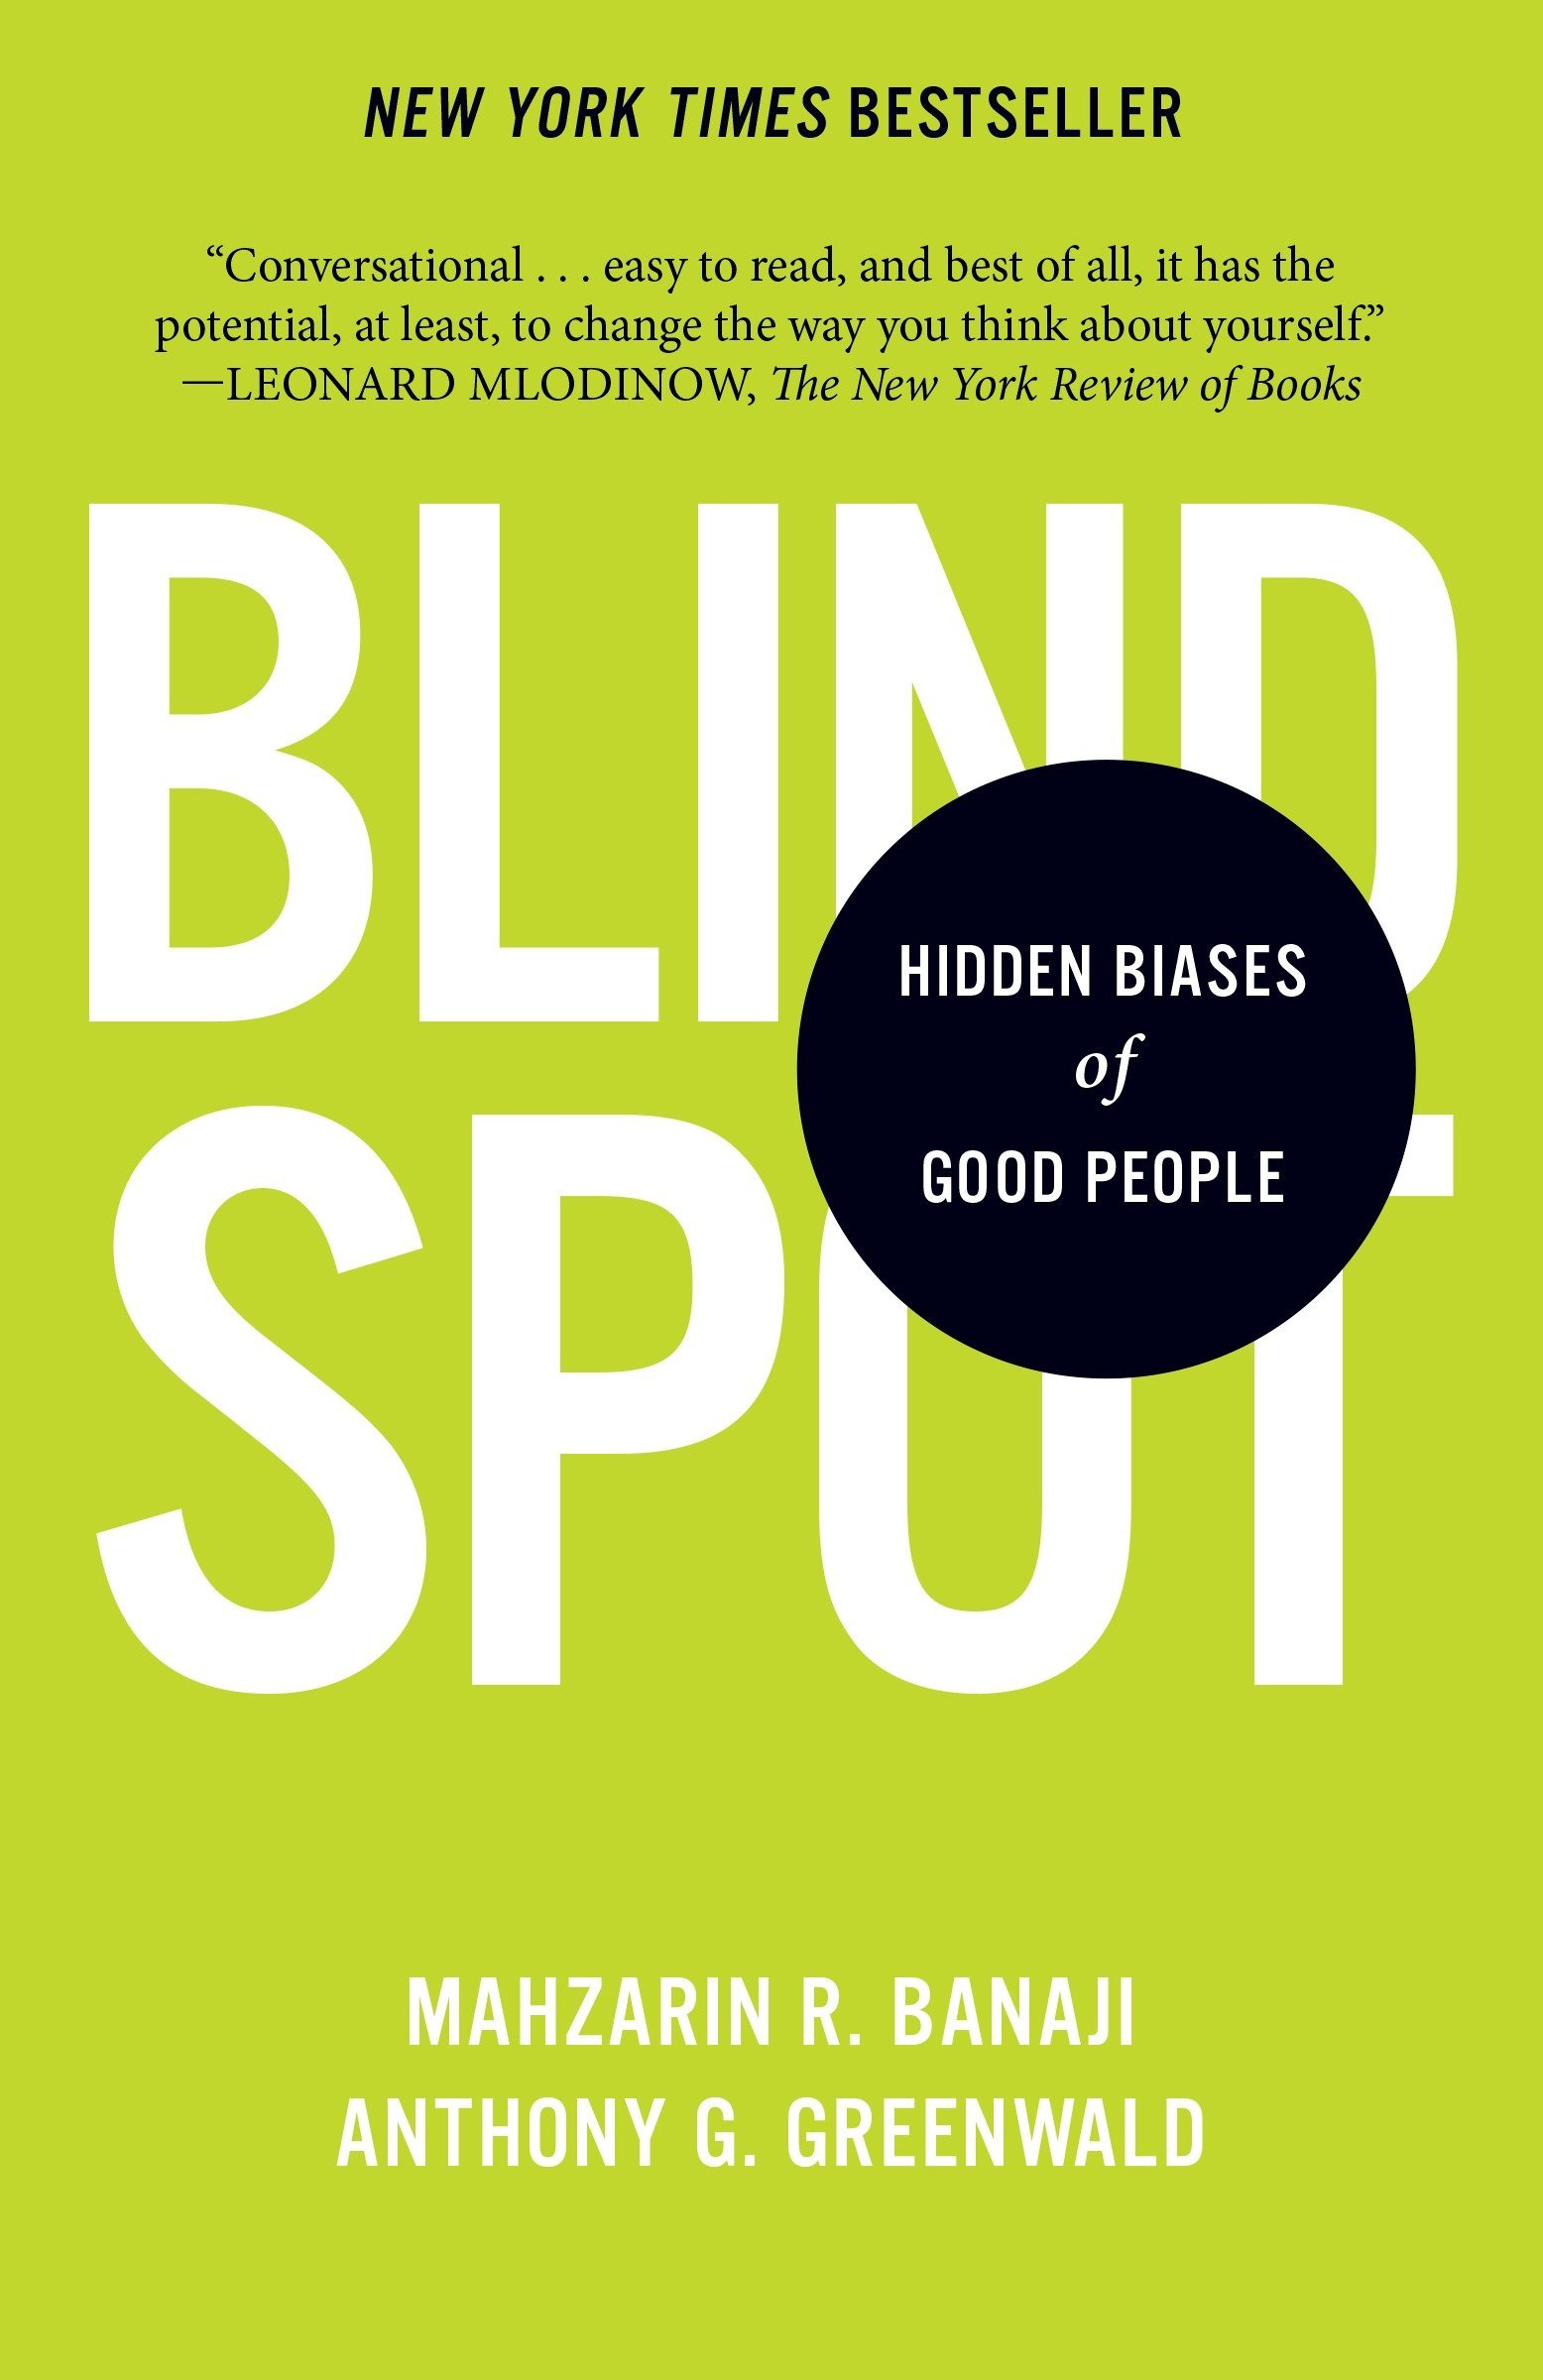 Blindspot : hidden biases of good people / Mahzarin R. Banaji and Anthony G. Greenwald